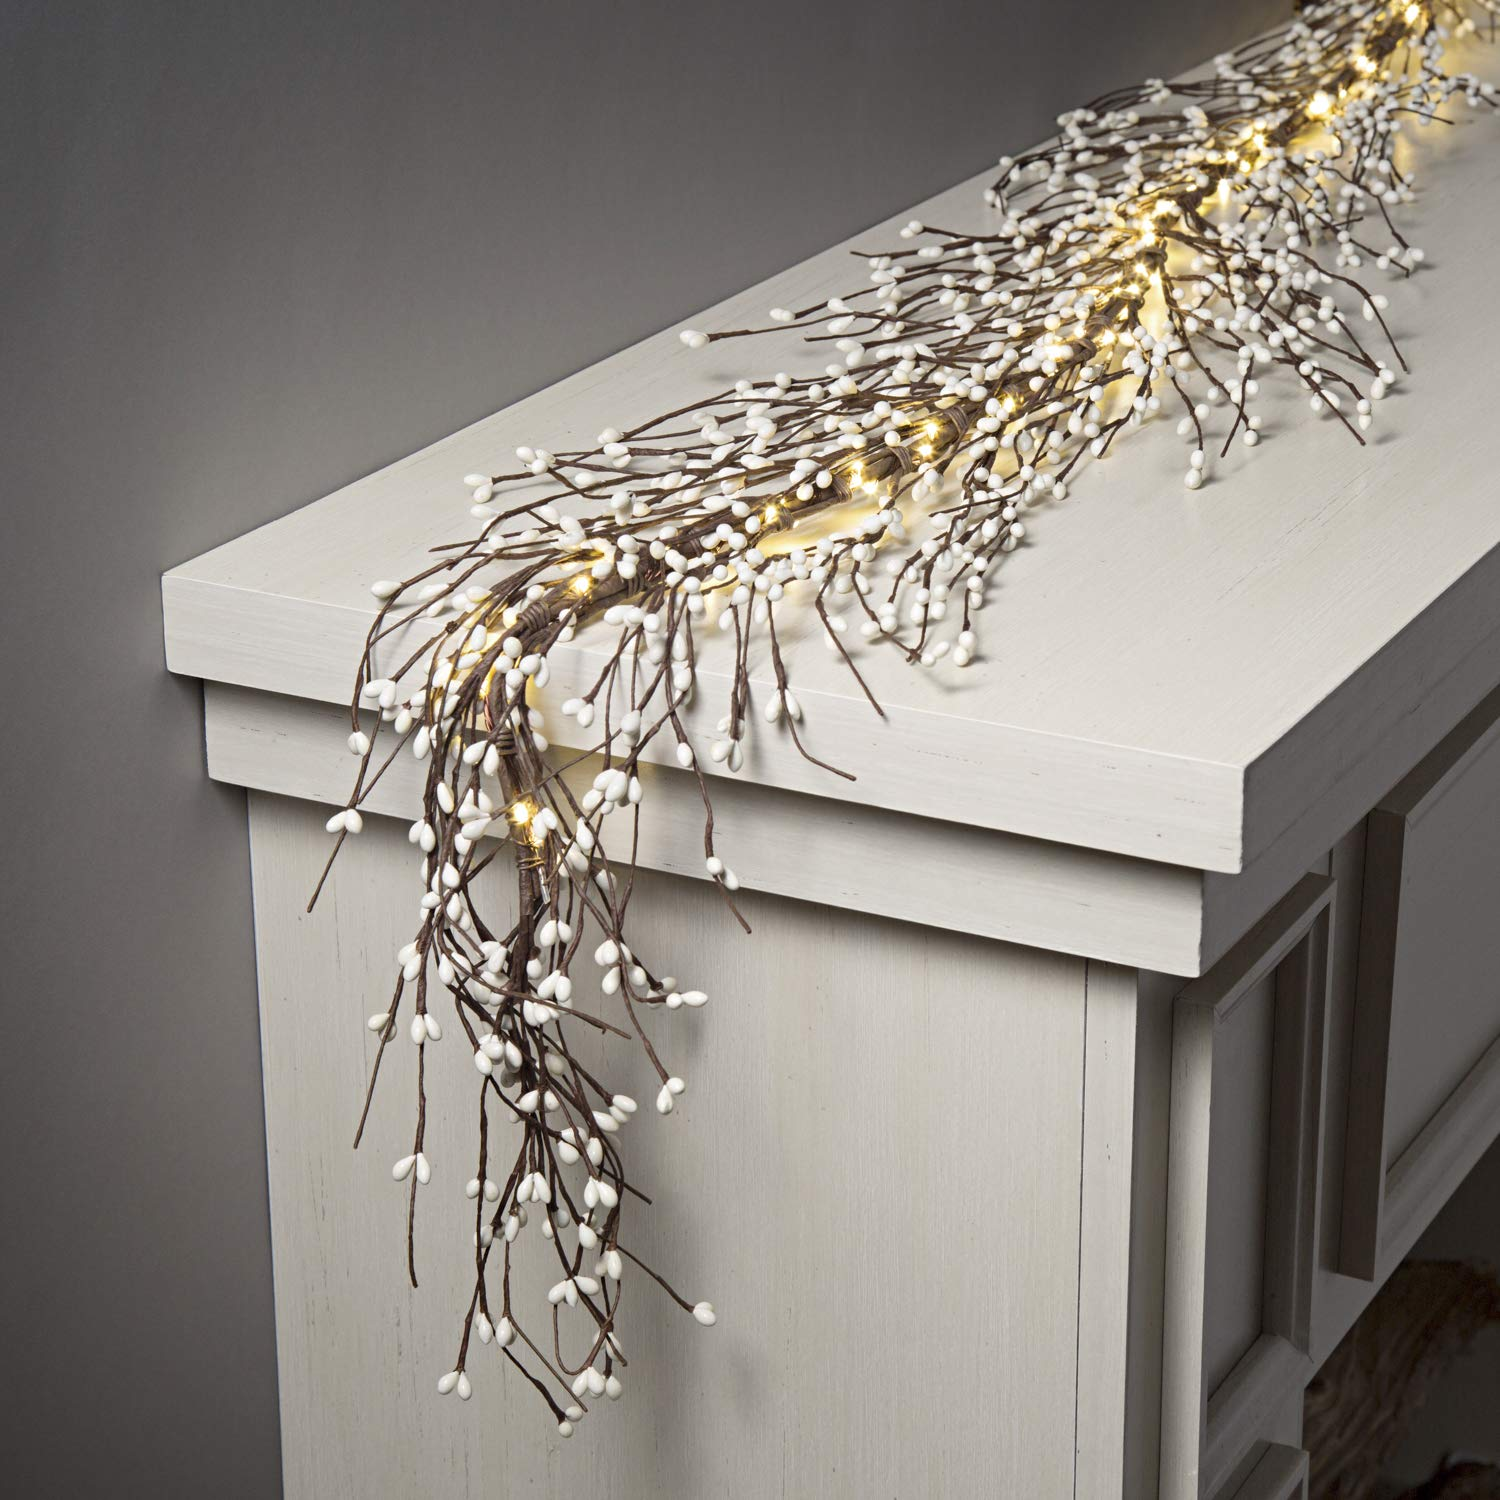 Pip Berry Garland with 100 LED Lights - 5 Feet Long, Brown Twig Branches with White Berries, Primitive Style, for Spring and Easter Decor, Battery Powered, Timer Included